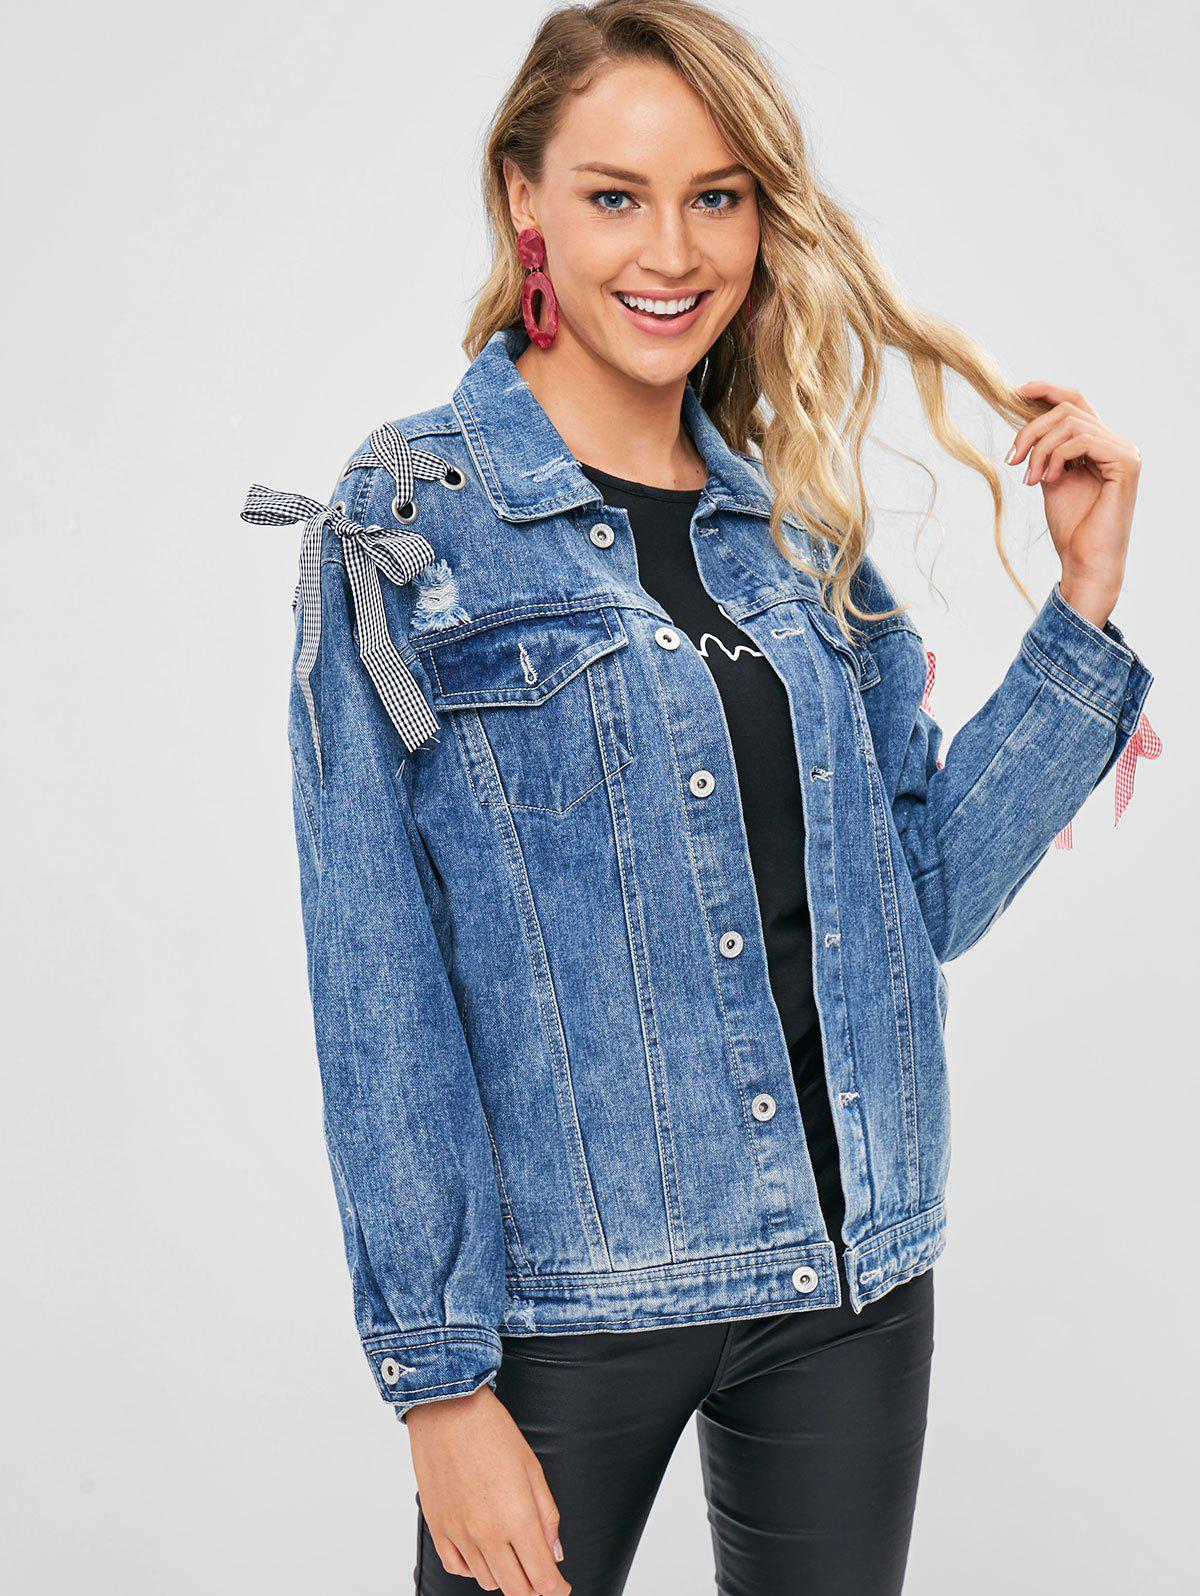 Grommet Lace Up Sleeve Denim Jacket